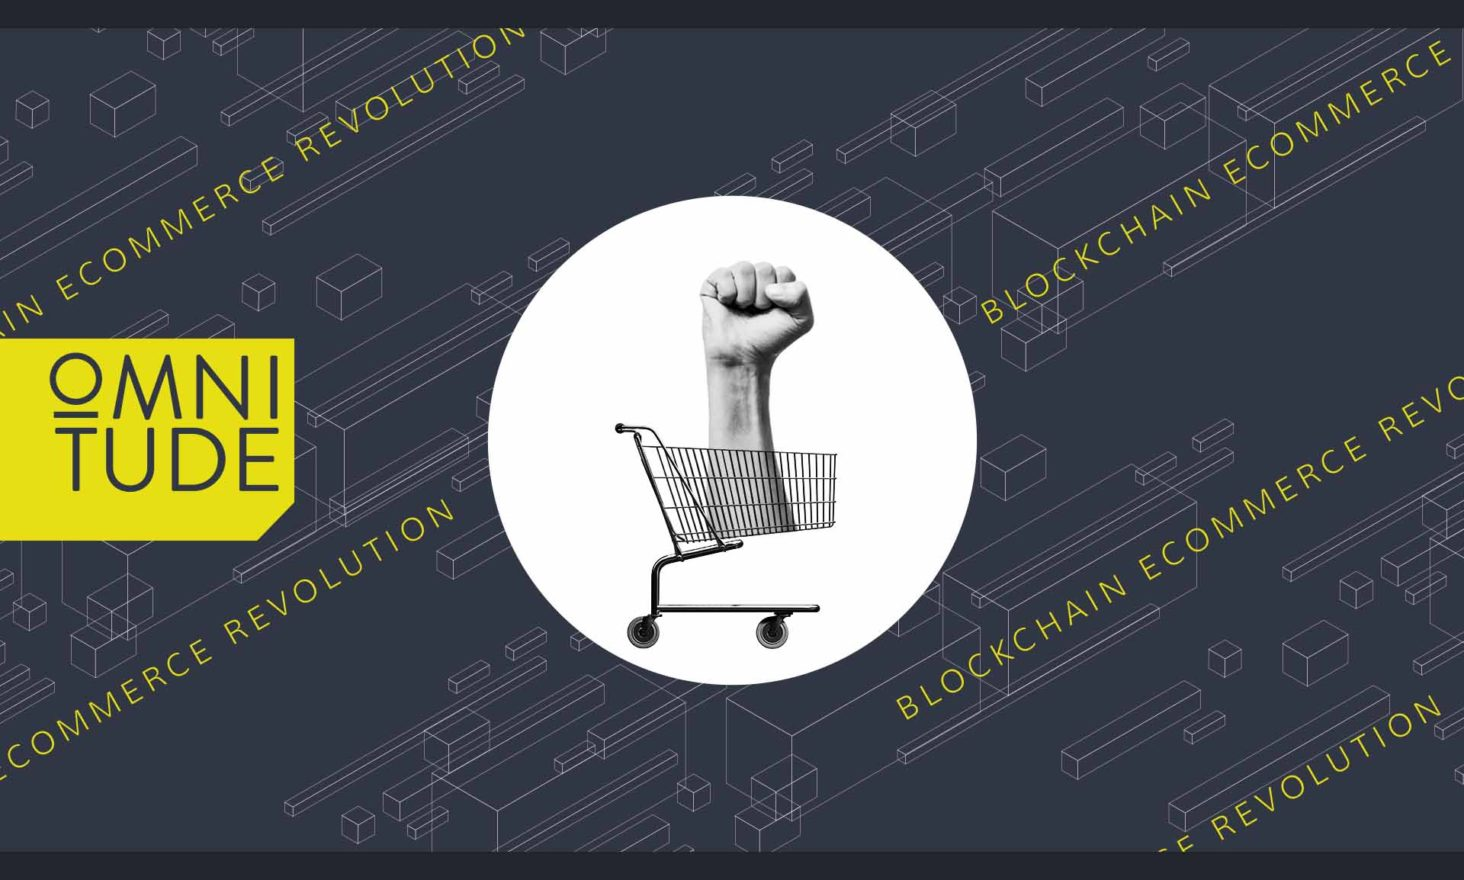 Omnitude Brings the Power of Hyperledger Technology to Enterprise Ecommerce with Its Smart Blockchain Platform